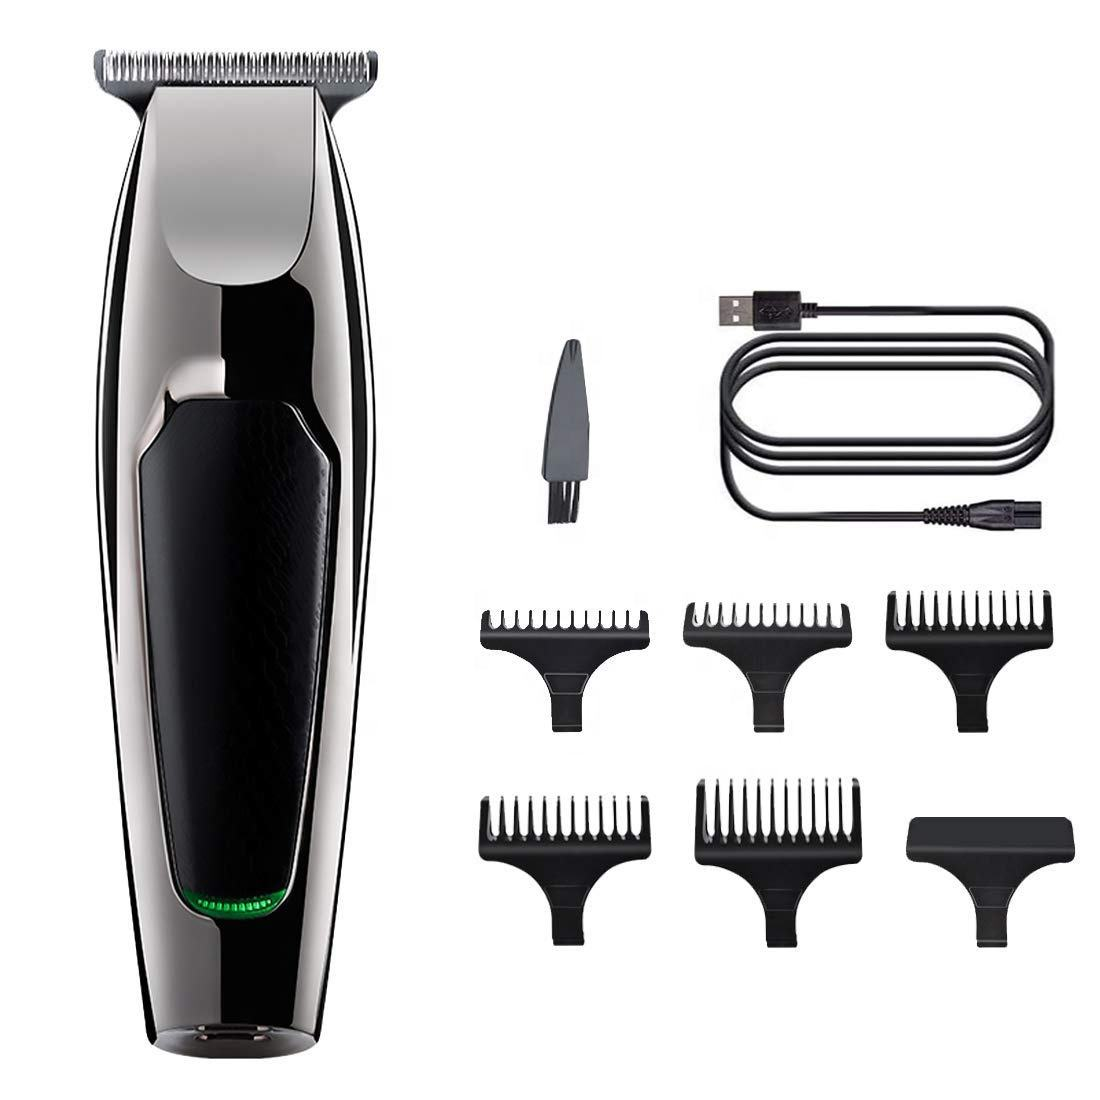 V030 Usb Charge Baard Trimmer Scheren Machine Mannen Haar Snijder Kapper Tondeuse